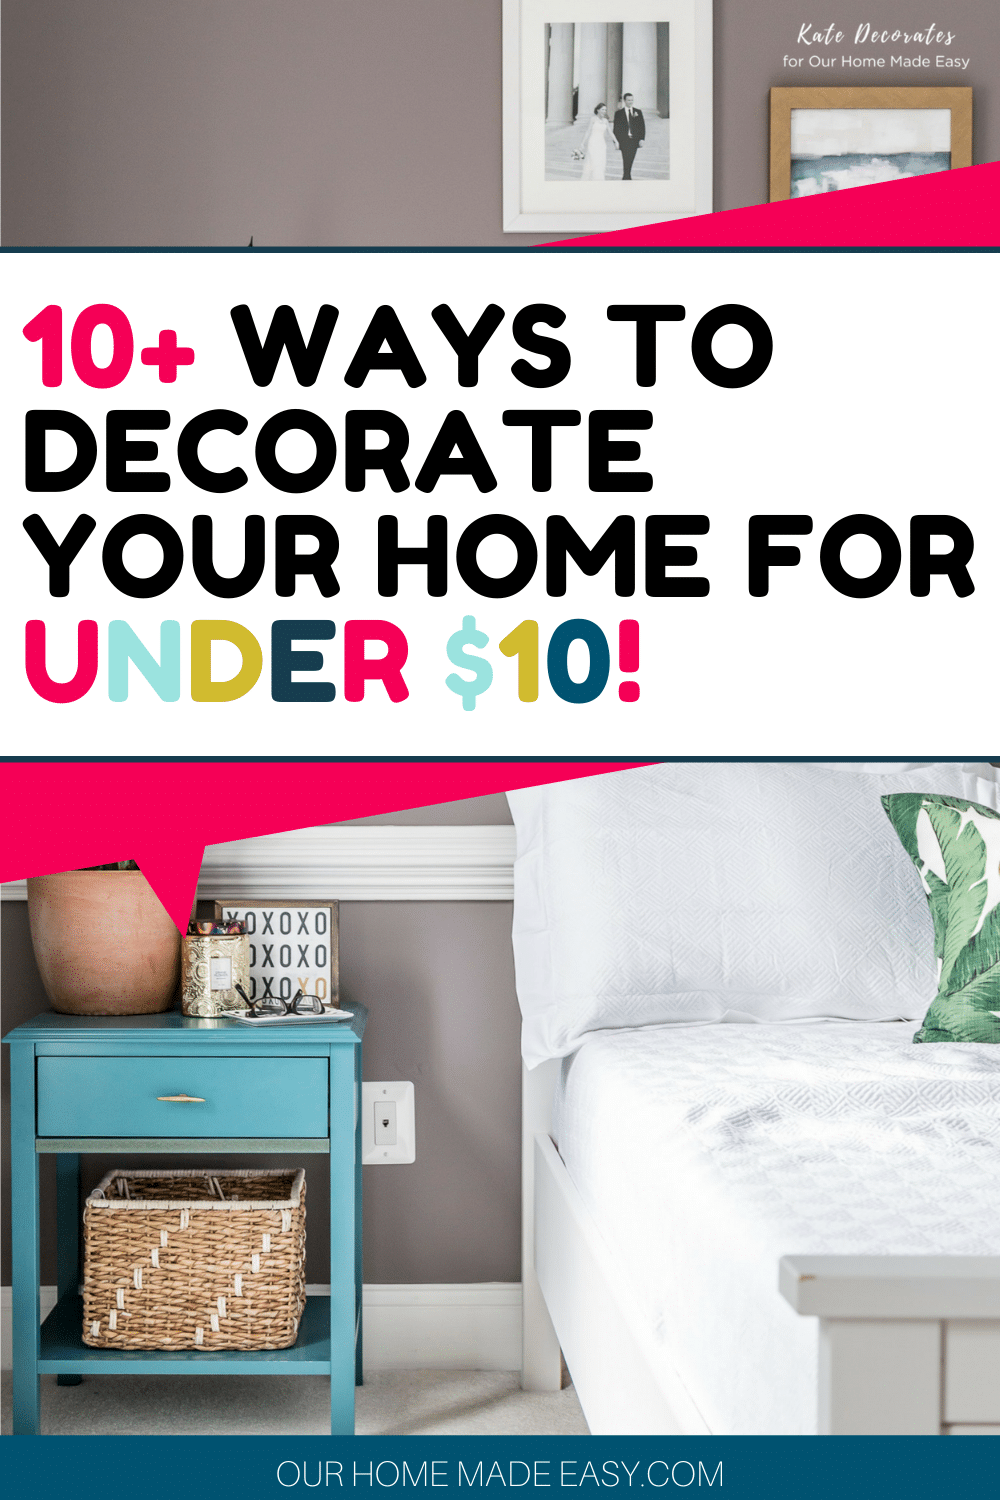 Looking for affordable home decor? Check out some of these ideas for home decor under $10. Decorating your home can be easy AND affordable!